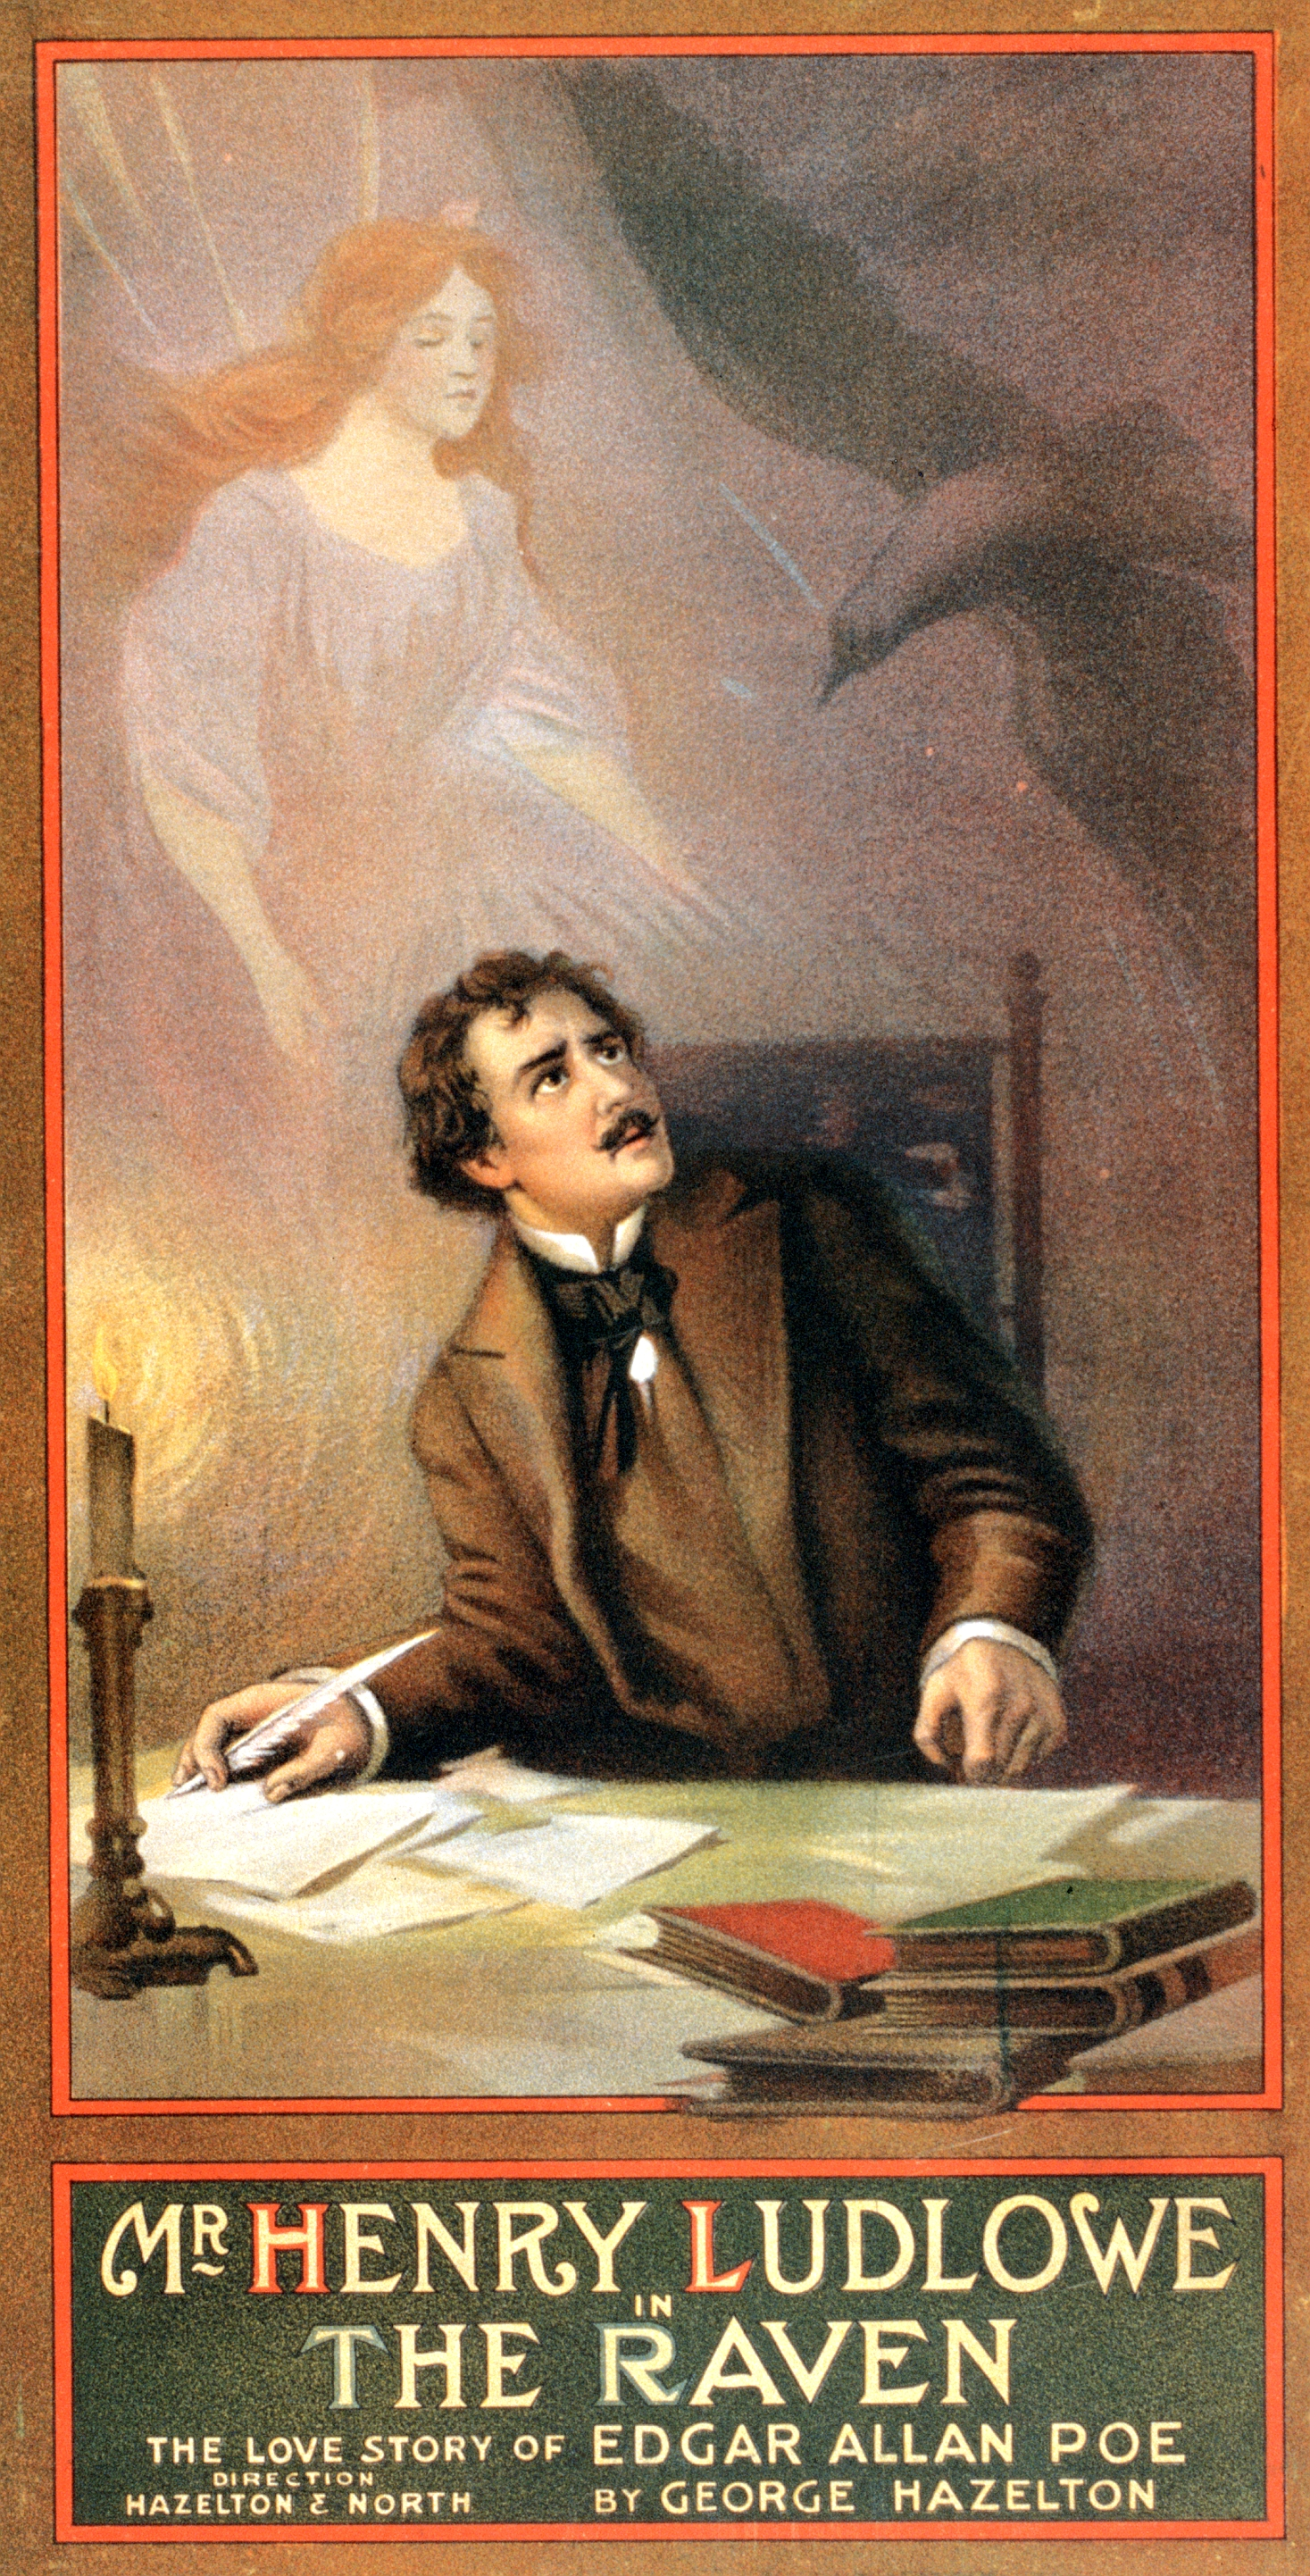 a brief life history and early works of edgar allan poe A biography of 19th century american author, edgar allan poe, written by robert giordano.